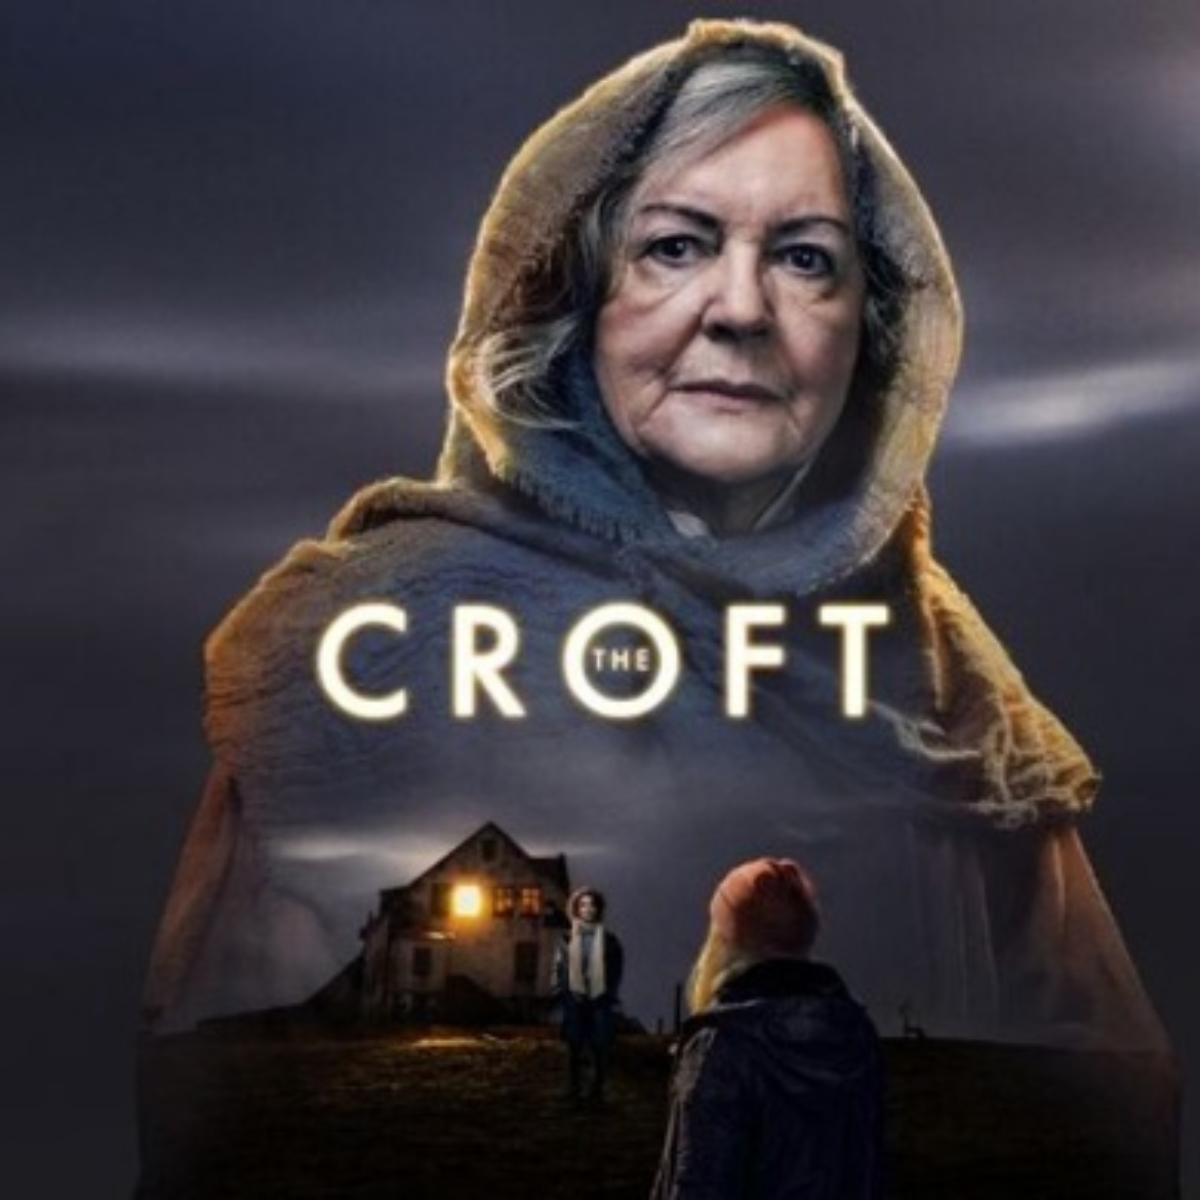 The Croft Images